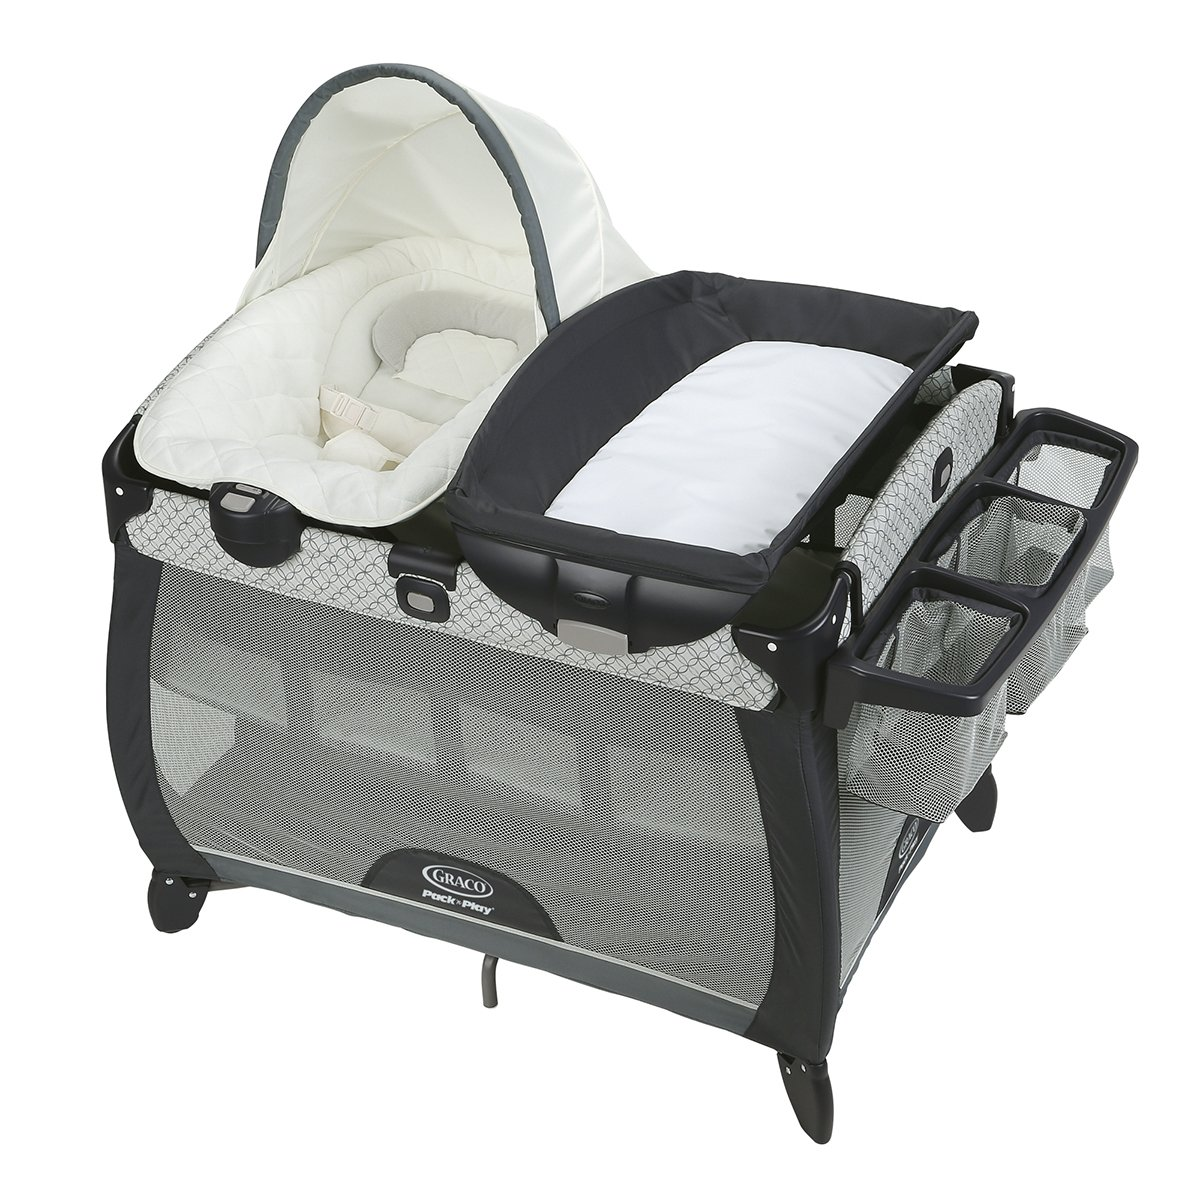 57e16060f856 Get Quotations · Graco Pack  n Play Quick Connect Portable Napper Deluxe  with Bassinet